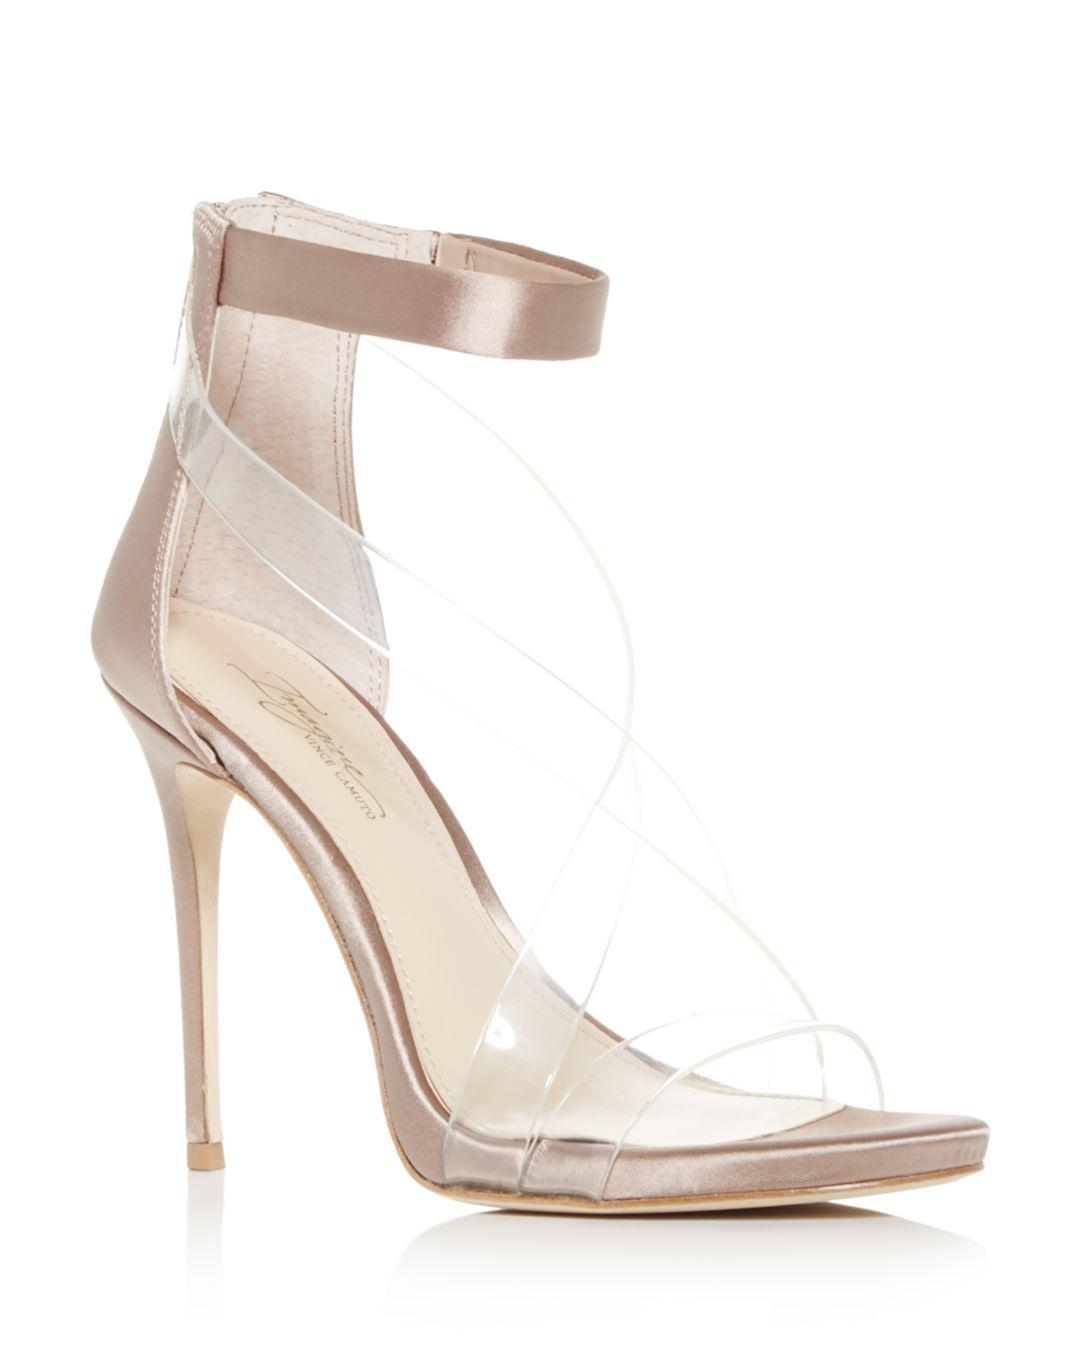 95171e117123 Lyst - Imagine Vince Camuto Women s Devin Ankle Strap High-heel Sandals